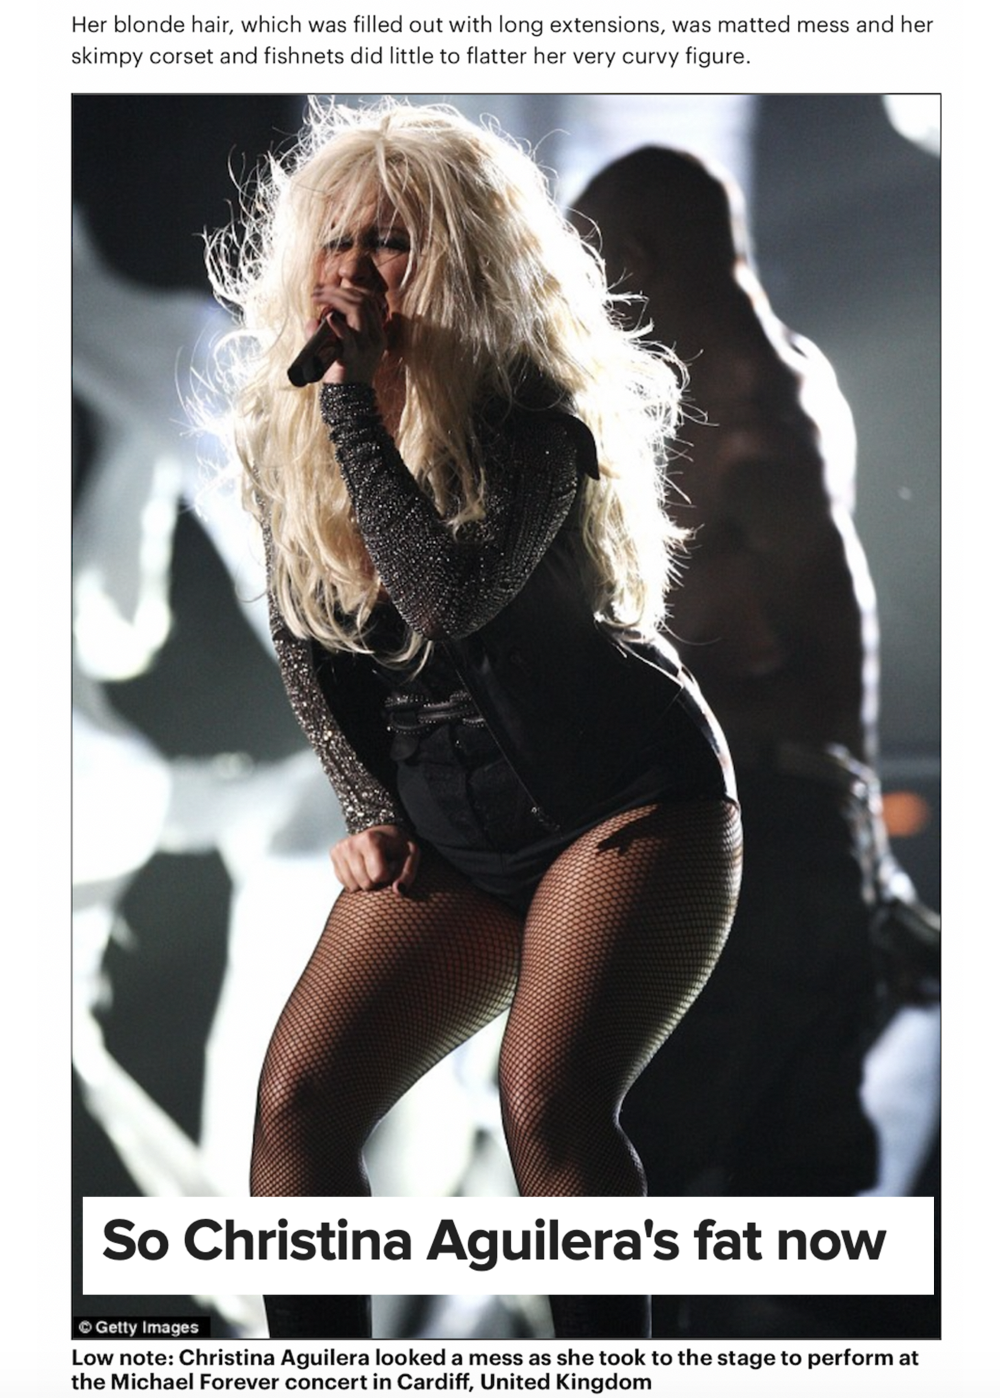 An article saying Christina Aguilera is wearing clothes unflattering to her very curvy figure, and